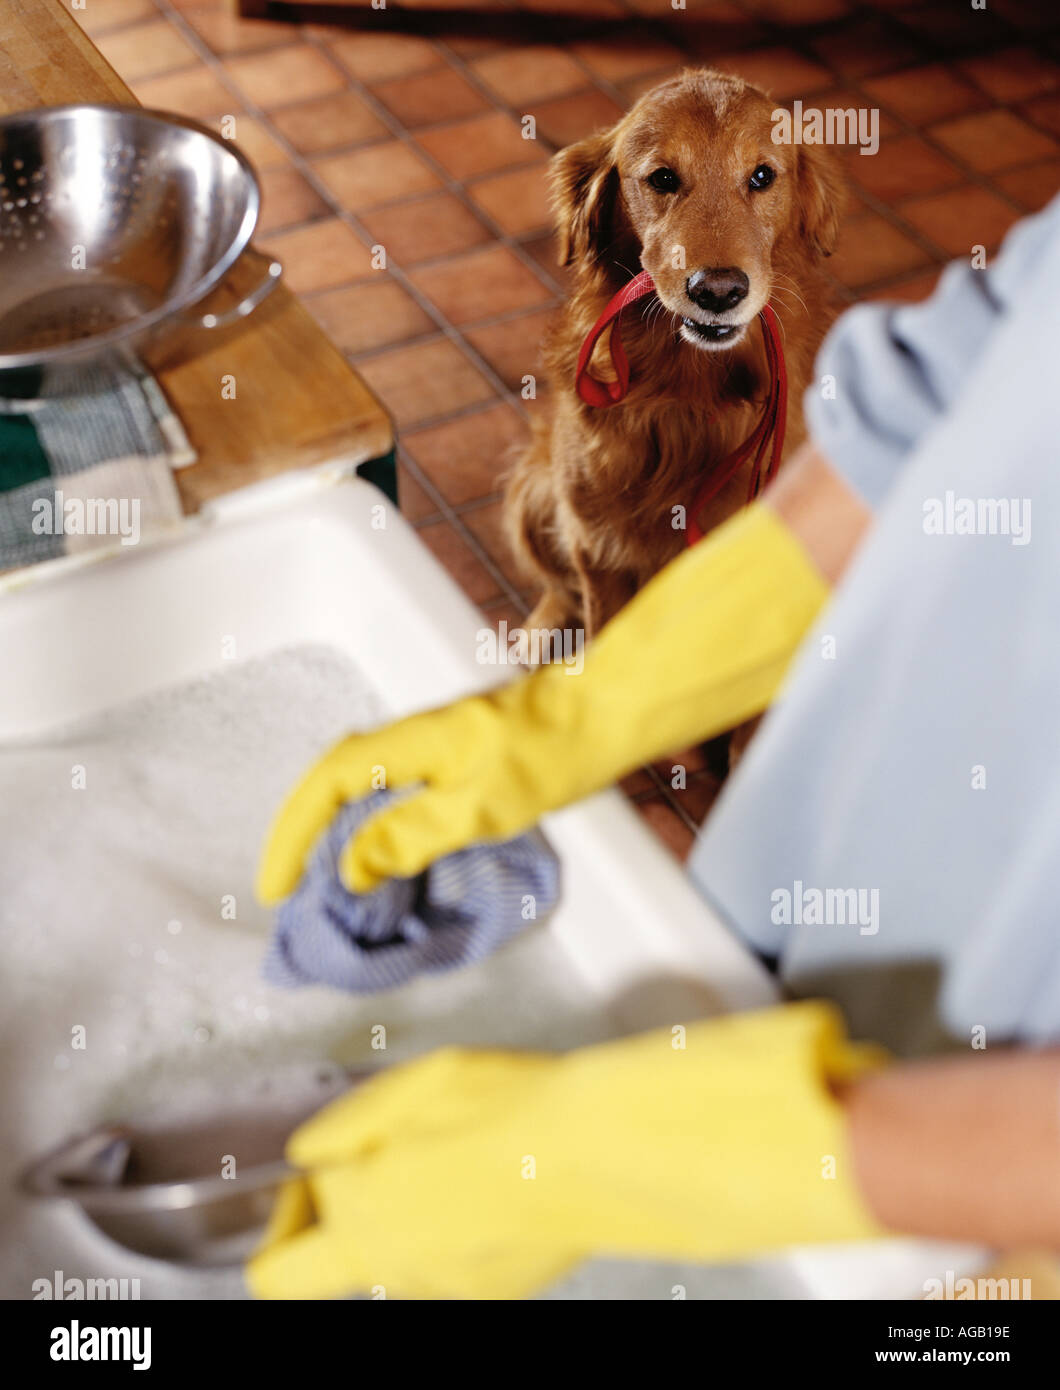 golden retriever waiting for walk whilst owner washes up - Stock Image